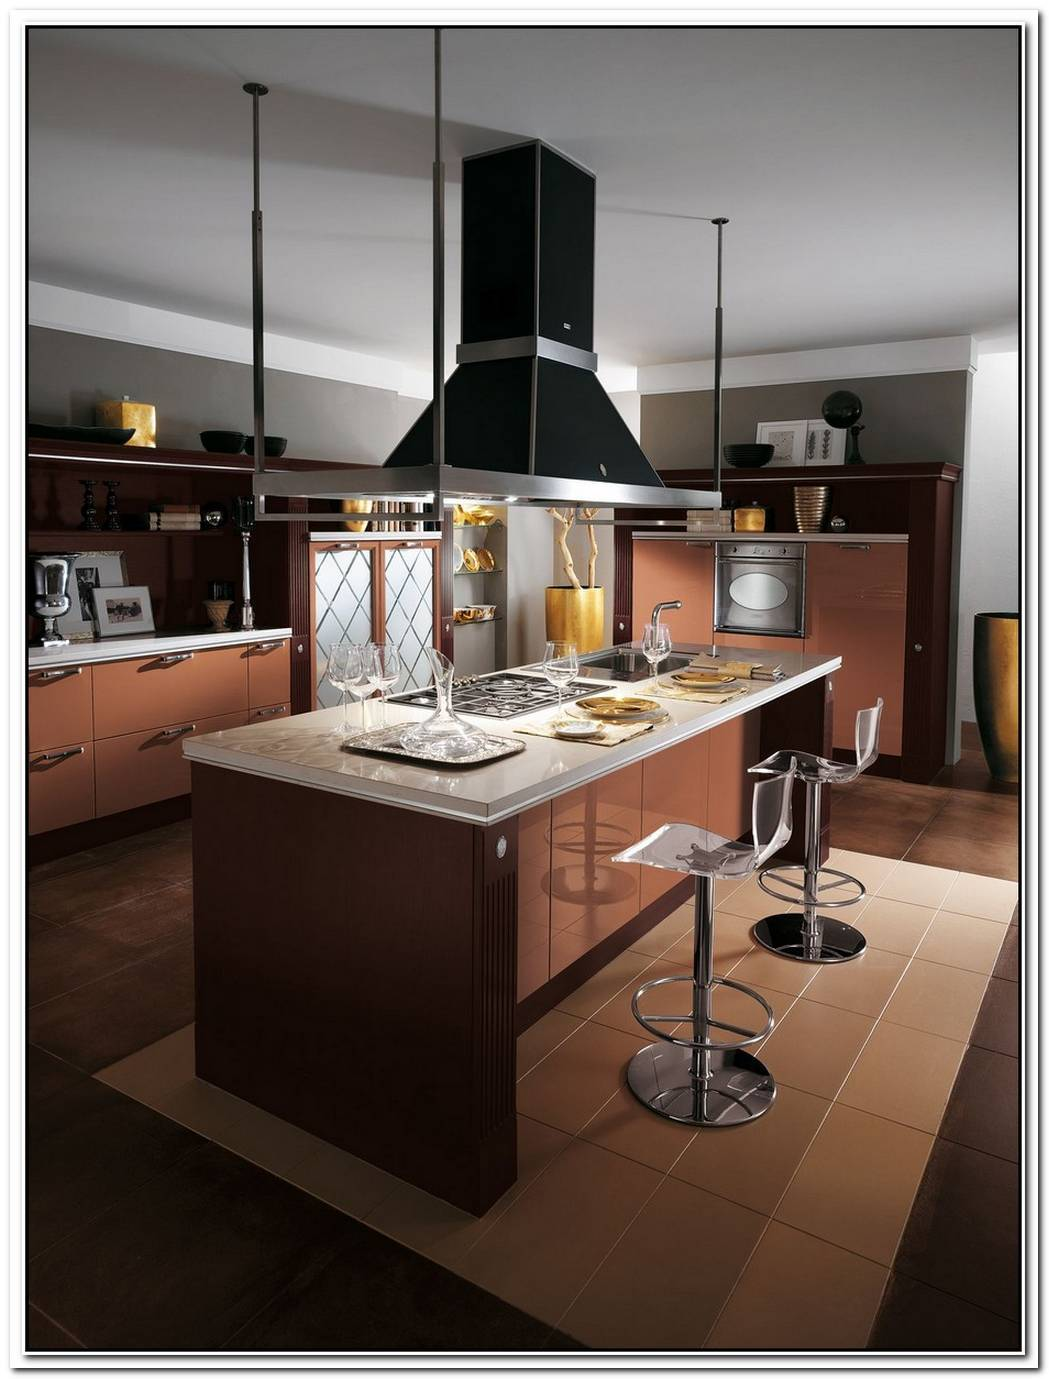 Stylish Baccarat Kitchen By Gianni Pareschi